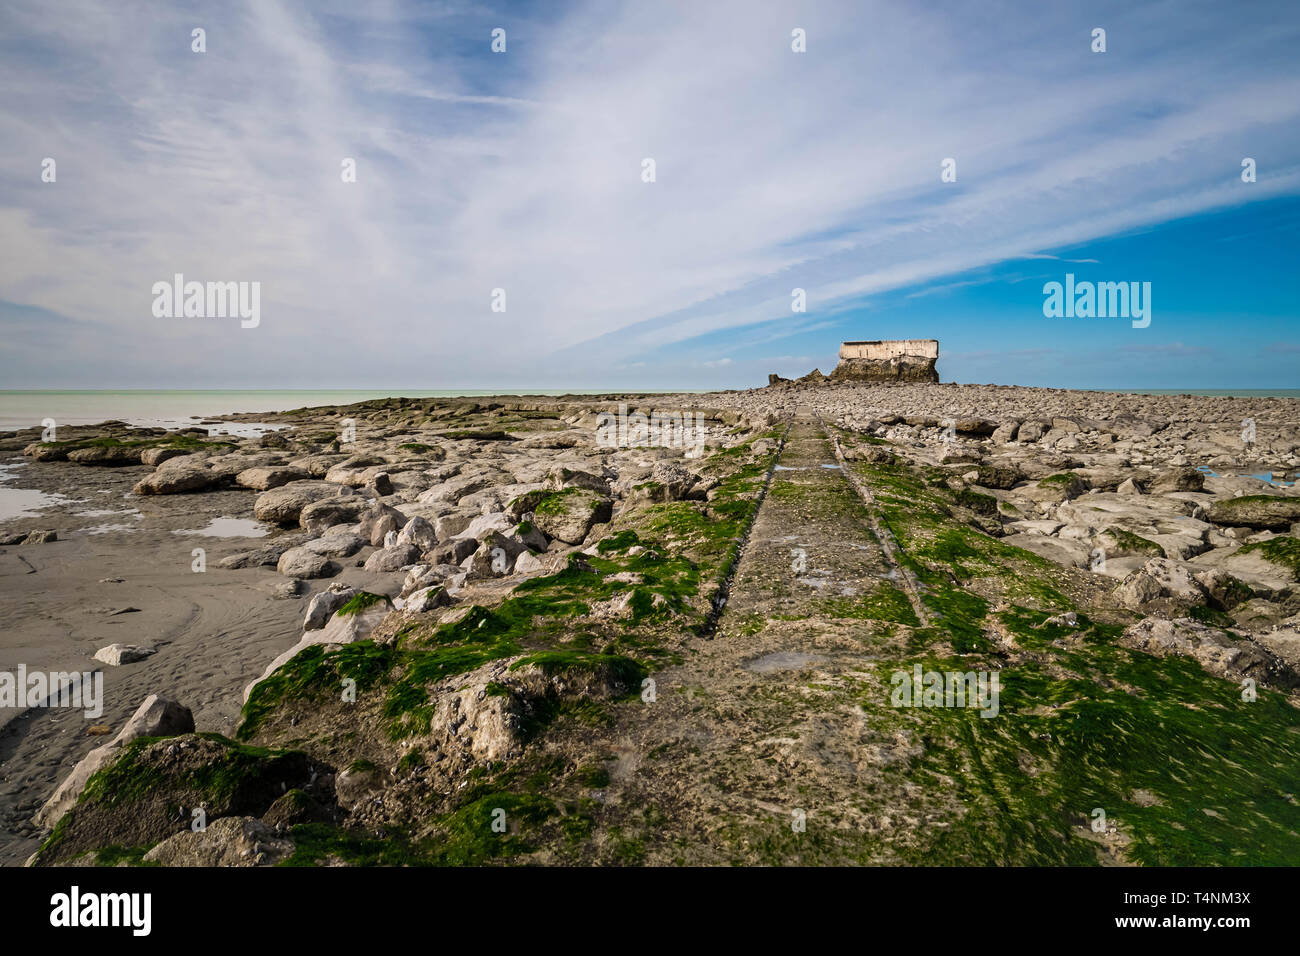 Abandoned railtracks leading through rocks to an ancient Fort on the coastline - Stock Image